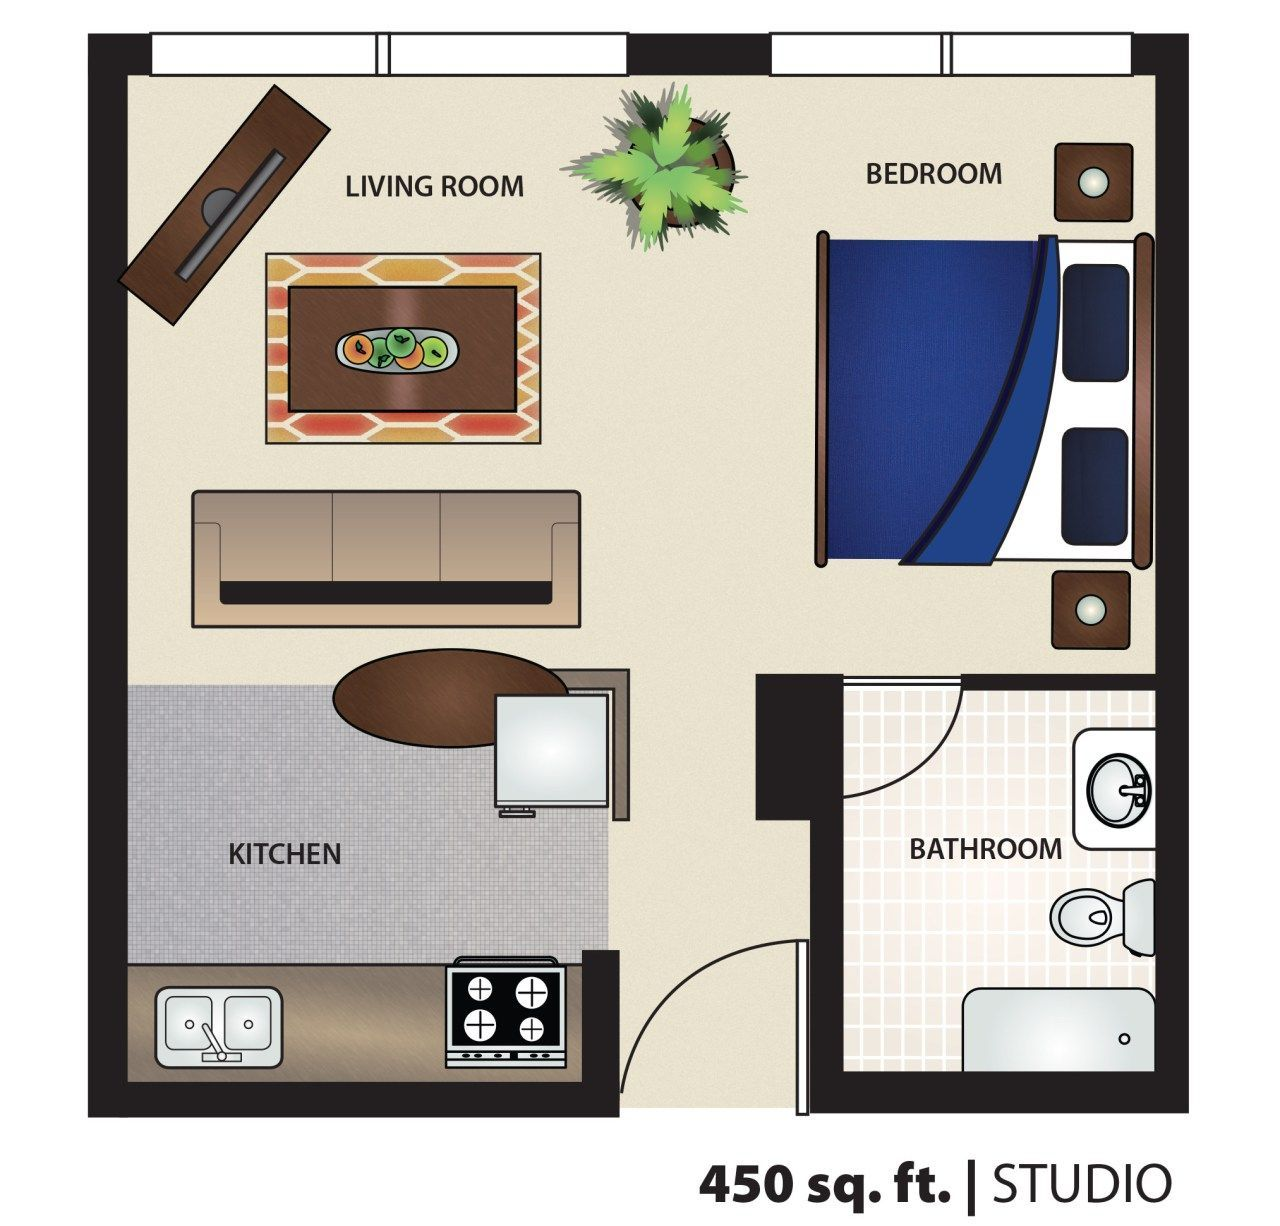 450 Square Foot Apartment Floor Plan Efficiency Studio 400 Of Home Design Map For 450 Sq Ft Of Home De Studio Floor Plans Cottage Style House Plans Floor Plans